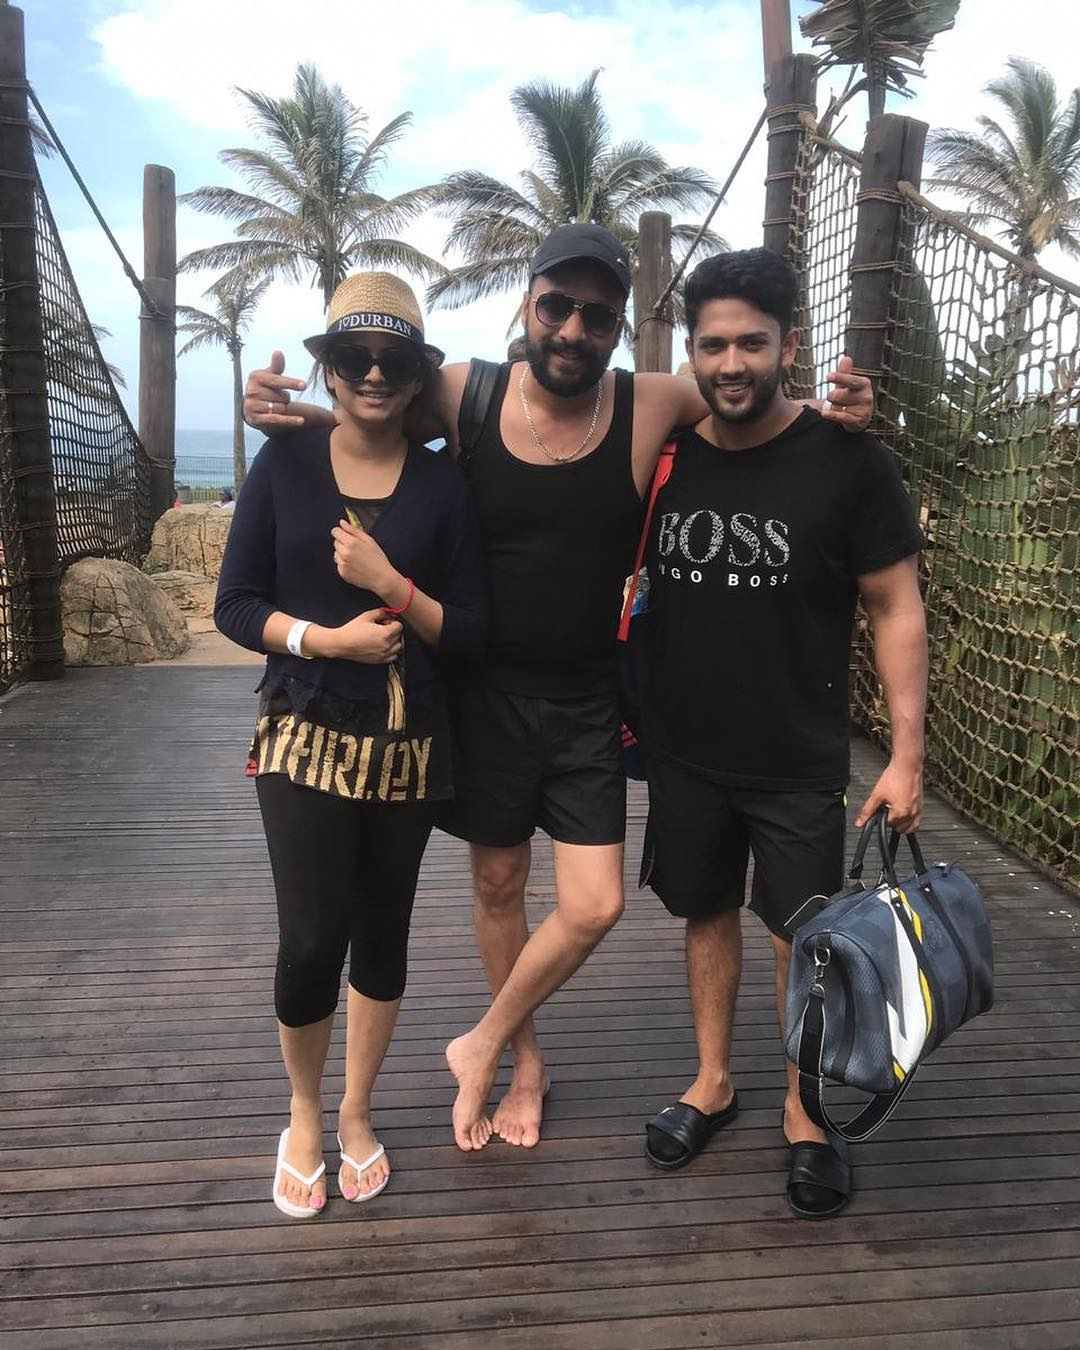 New Photos of Benita David with her Husband in South Africa